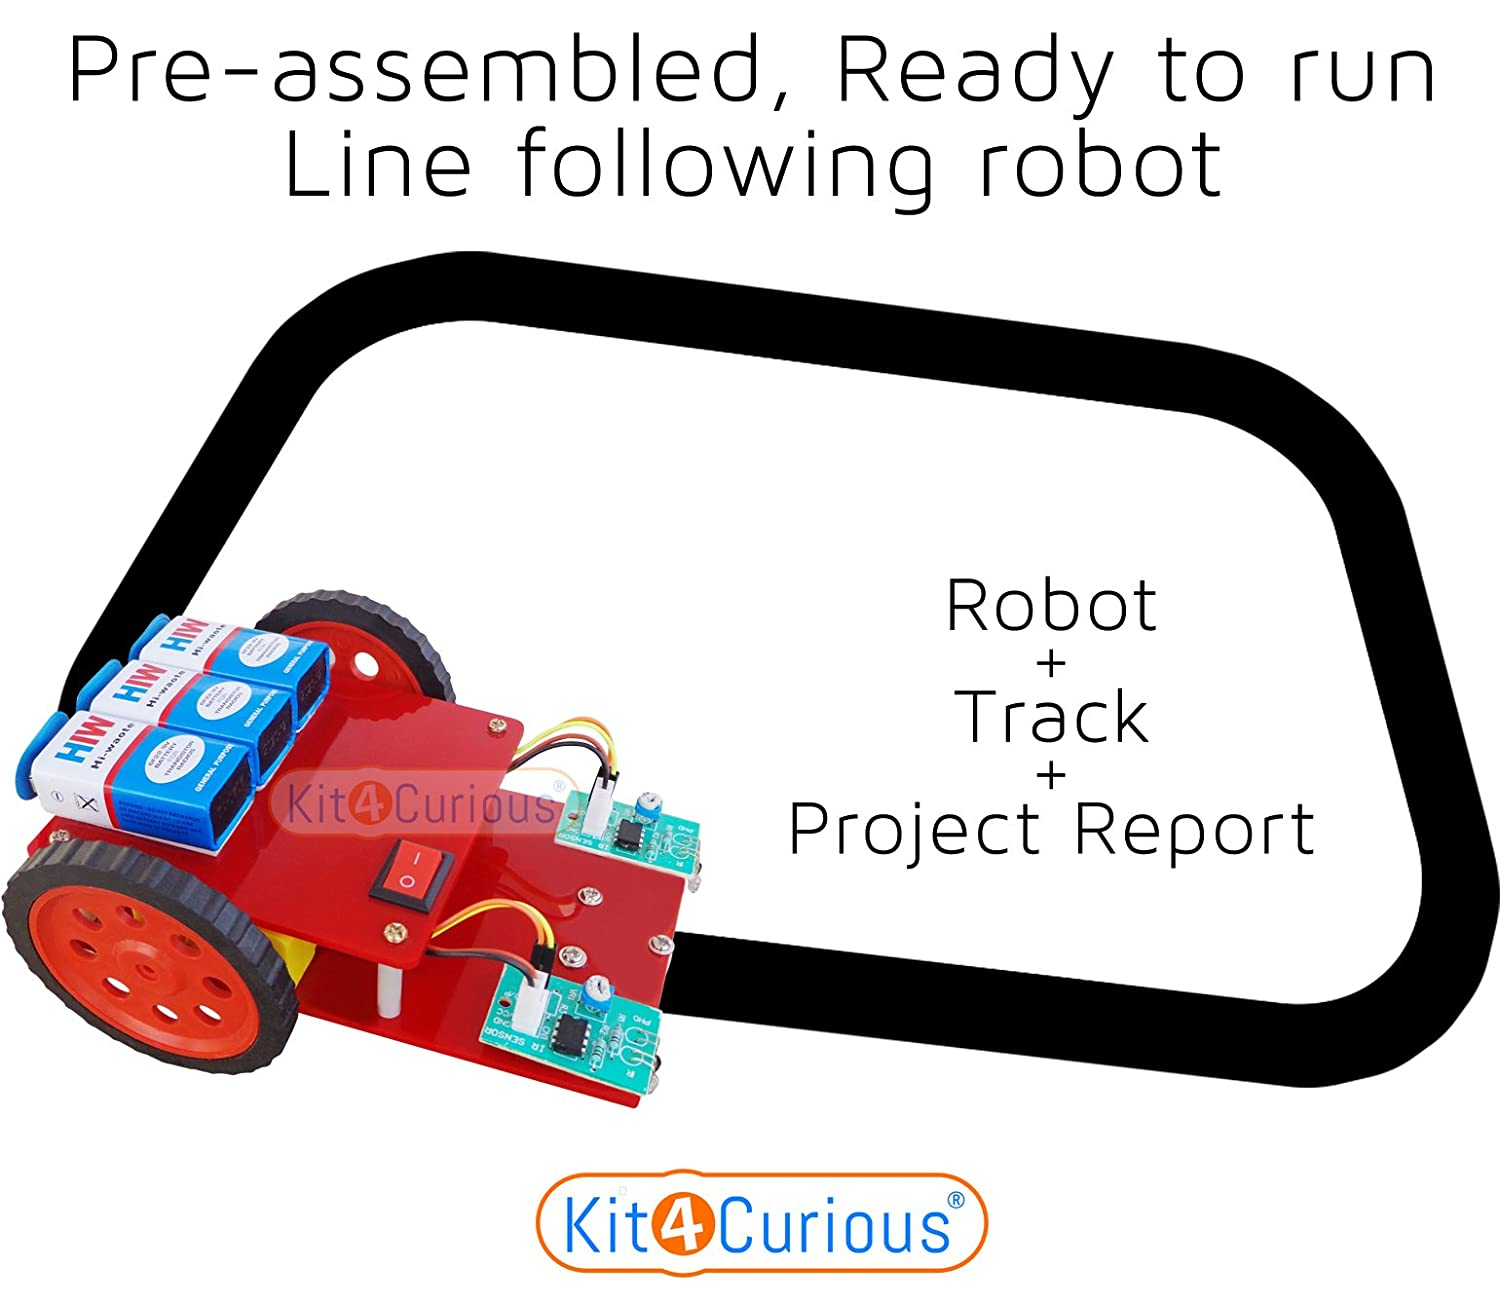 Kit4curious Tech Line Following Robot Complete Kit Ir Sensor Based How To Make 8051 Micro Controller Follower With Instruction Industrial Scientific